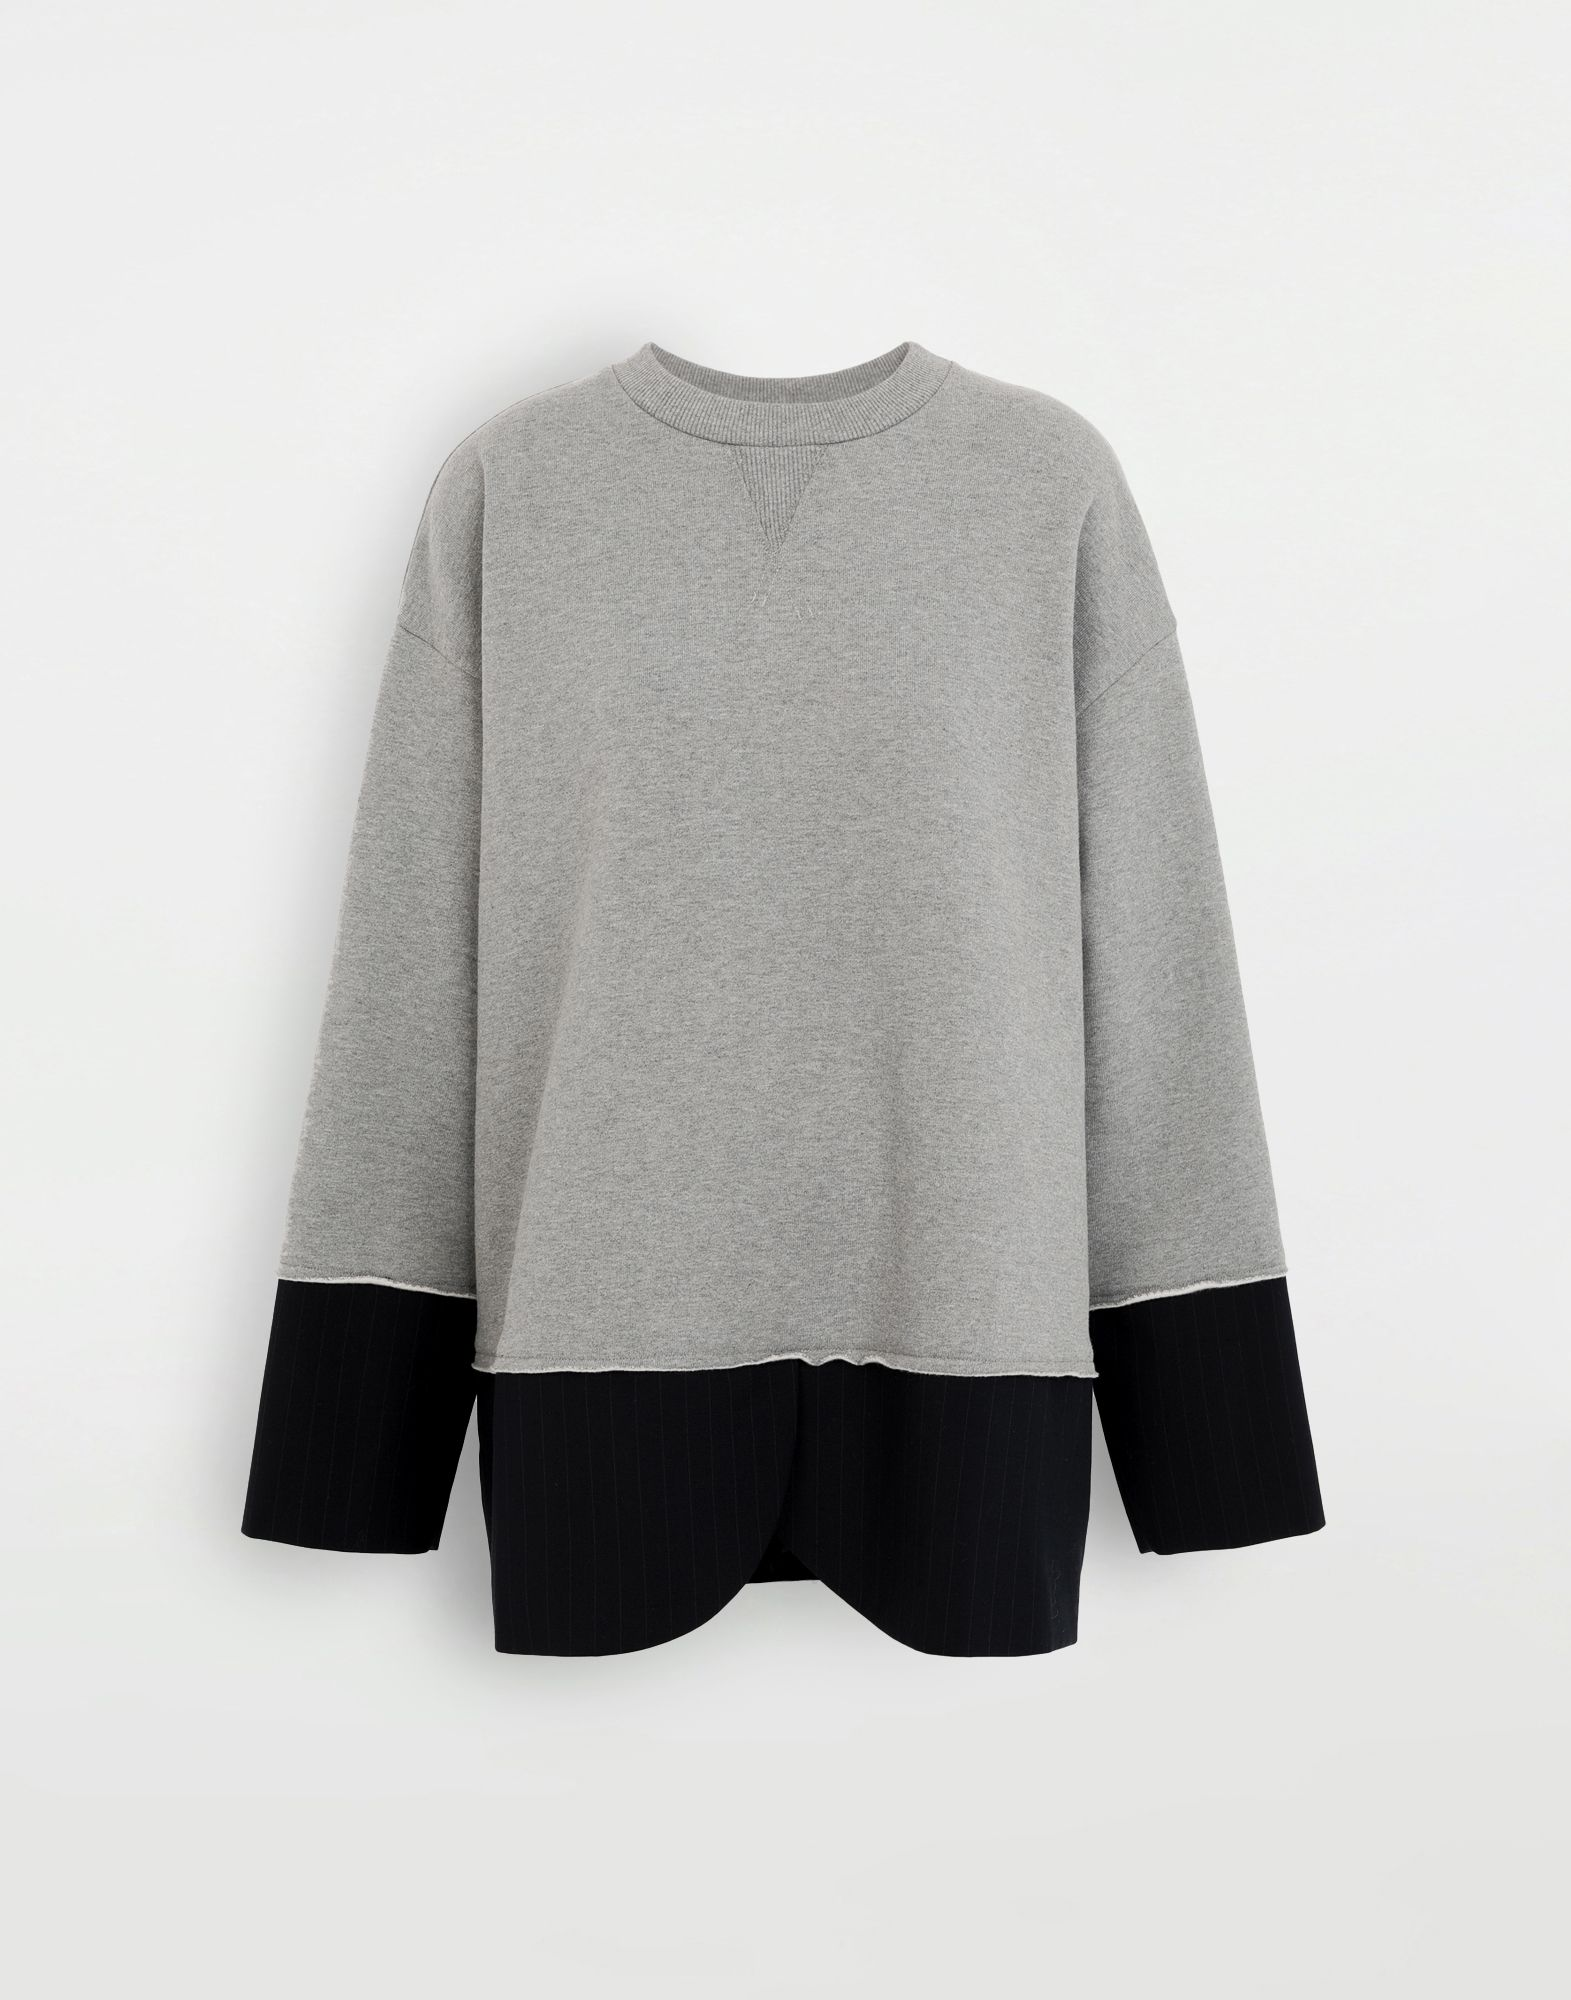 MM6 MAISON MARGIELA Spliced sweatshirt Sweatshirt Woman f